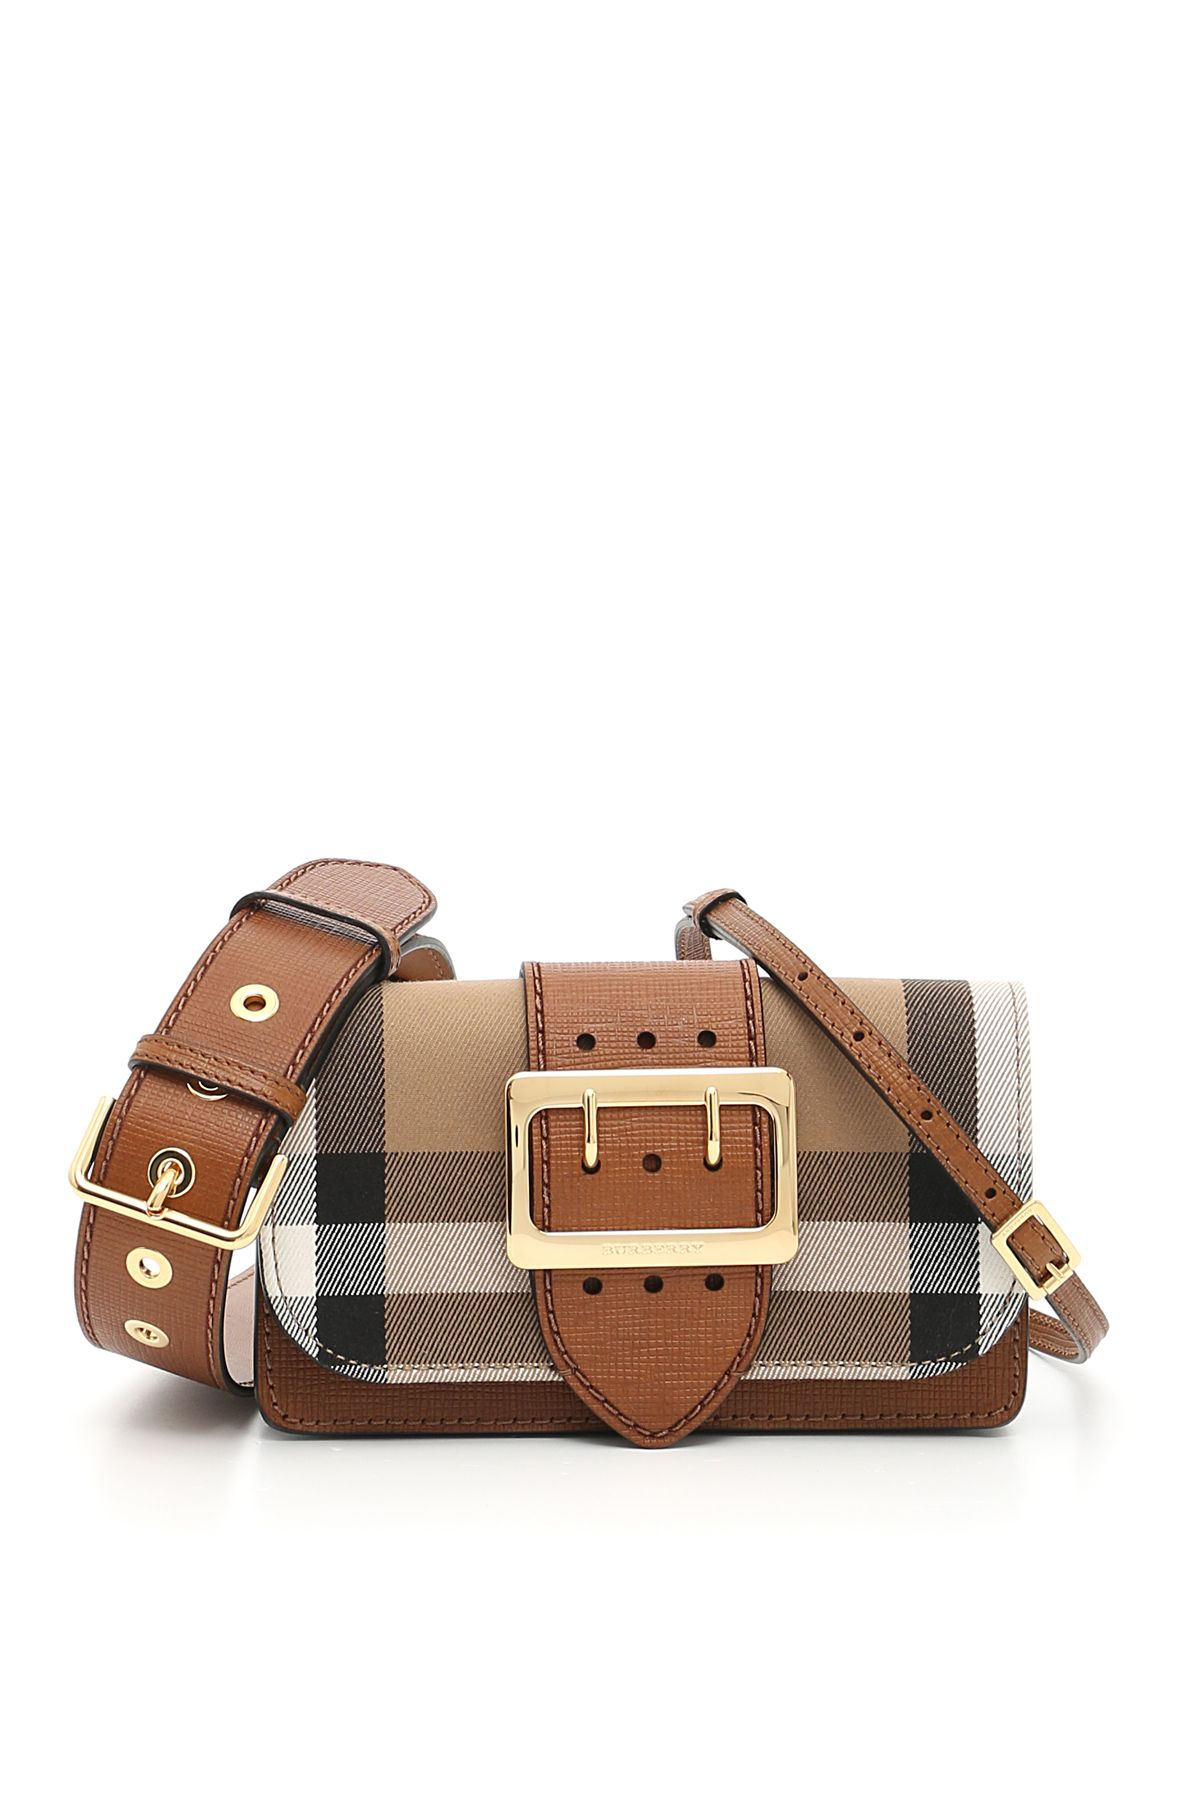 The Small Buckle Bag